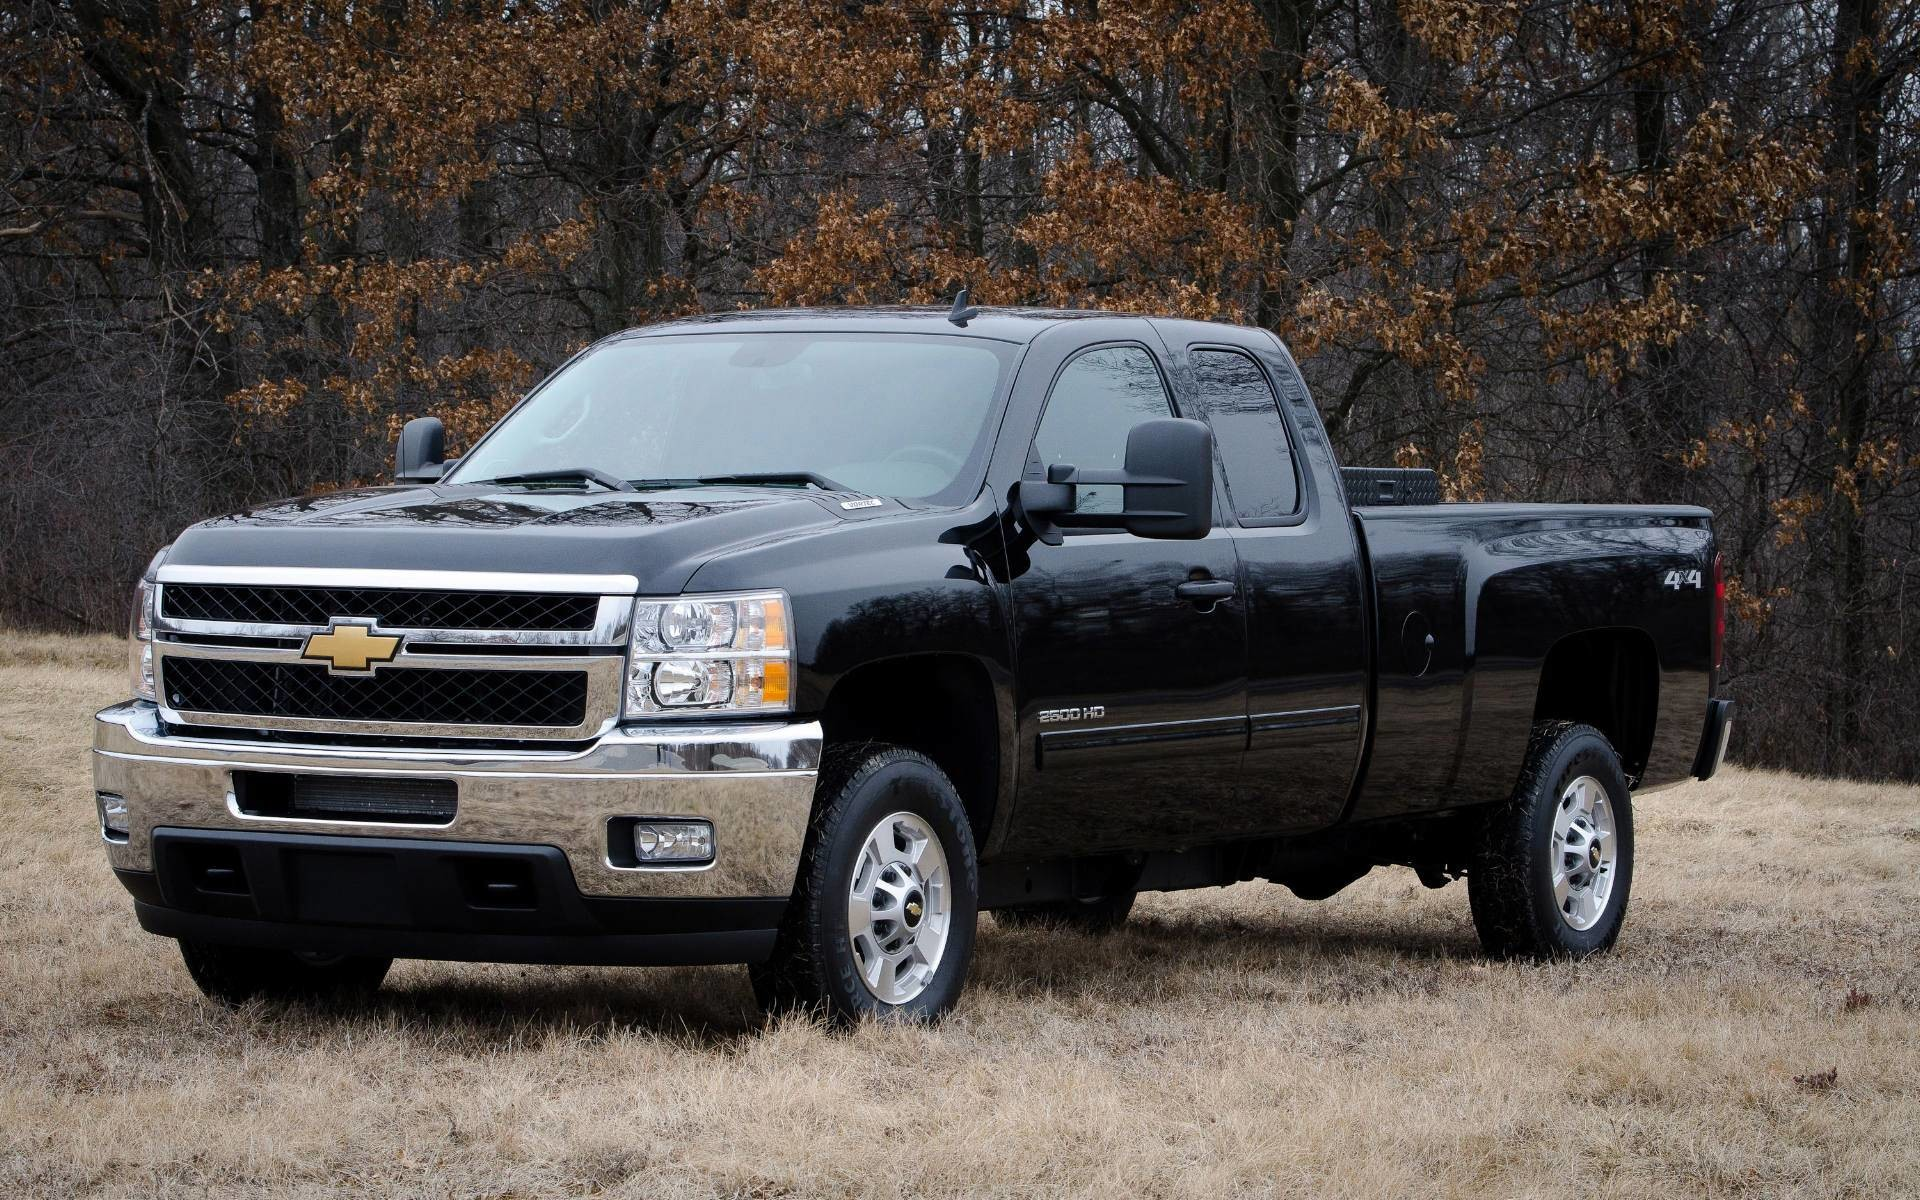 2013 Chevrolet Silverado Wallpapers   High Quality Wallpapers